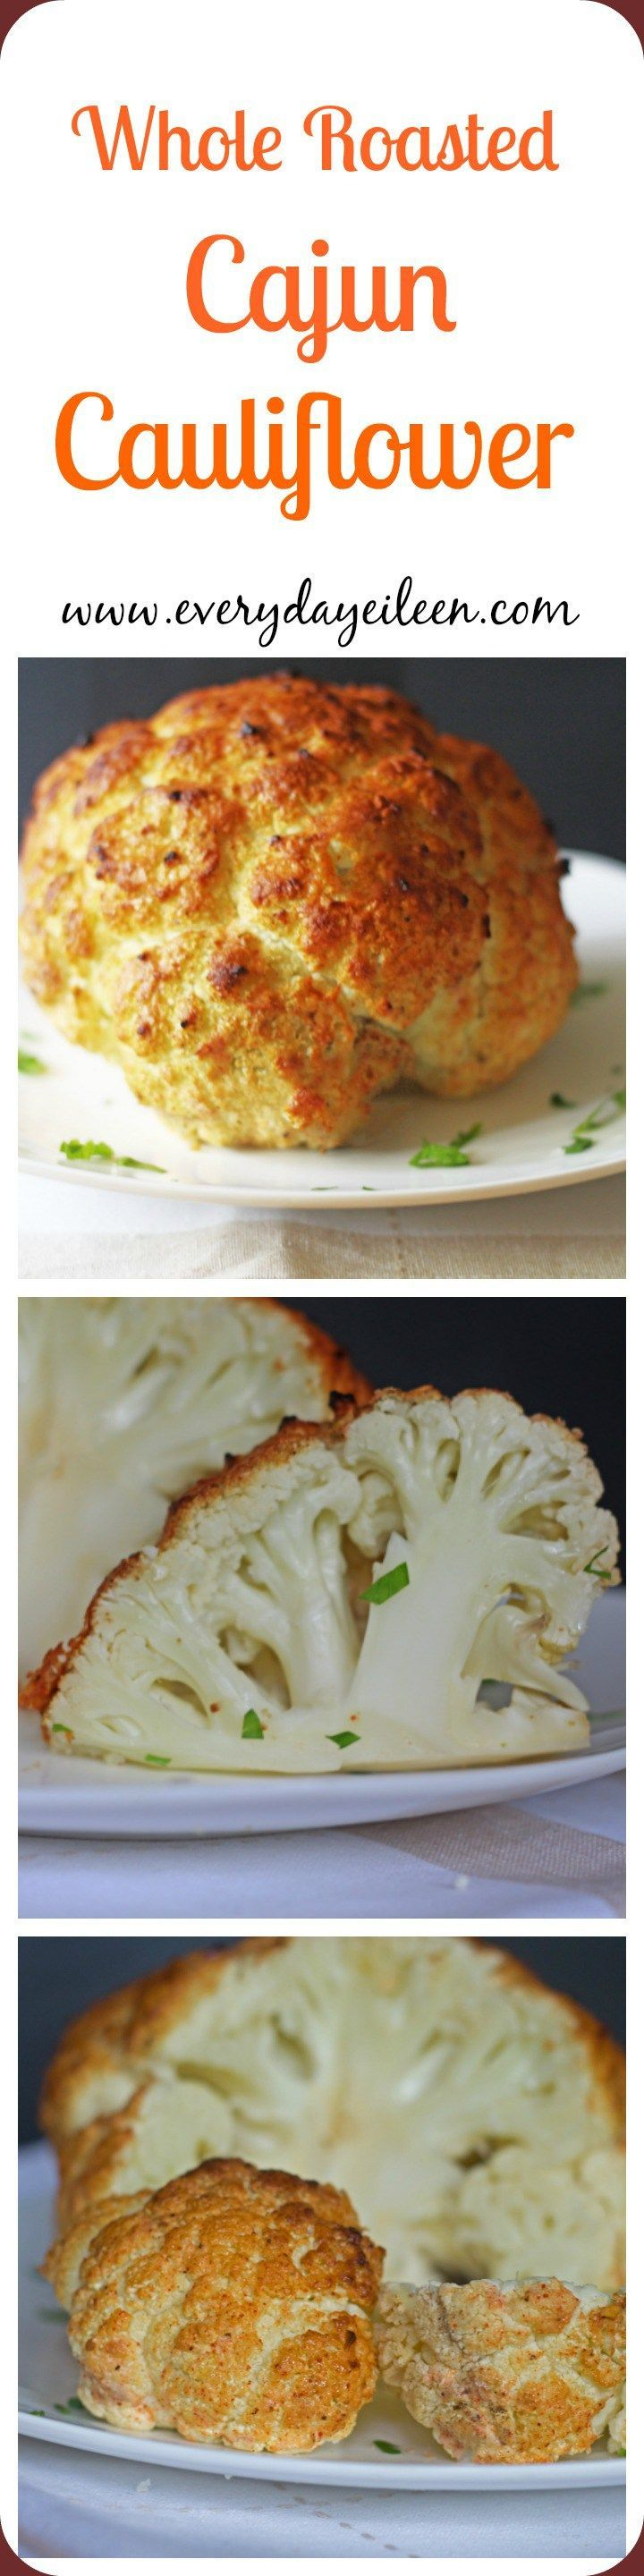 Whole Roasted Cajun Cauliflower is roasted in the oven. Fat-free plain yogurt is combined with Homemade Cajun Seasonings.  A low-fat, low-carb, gluten-free!